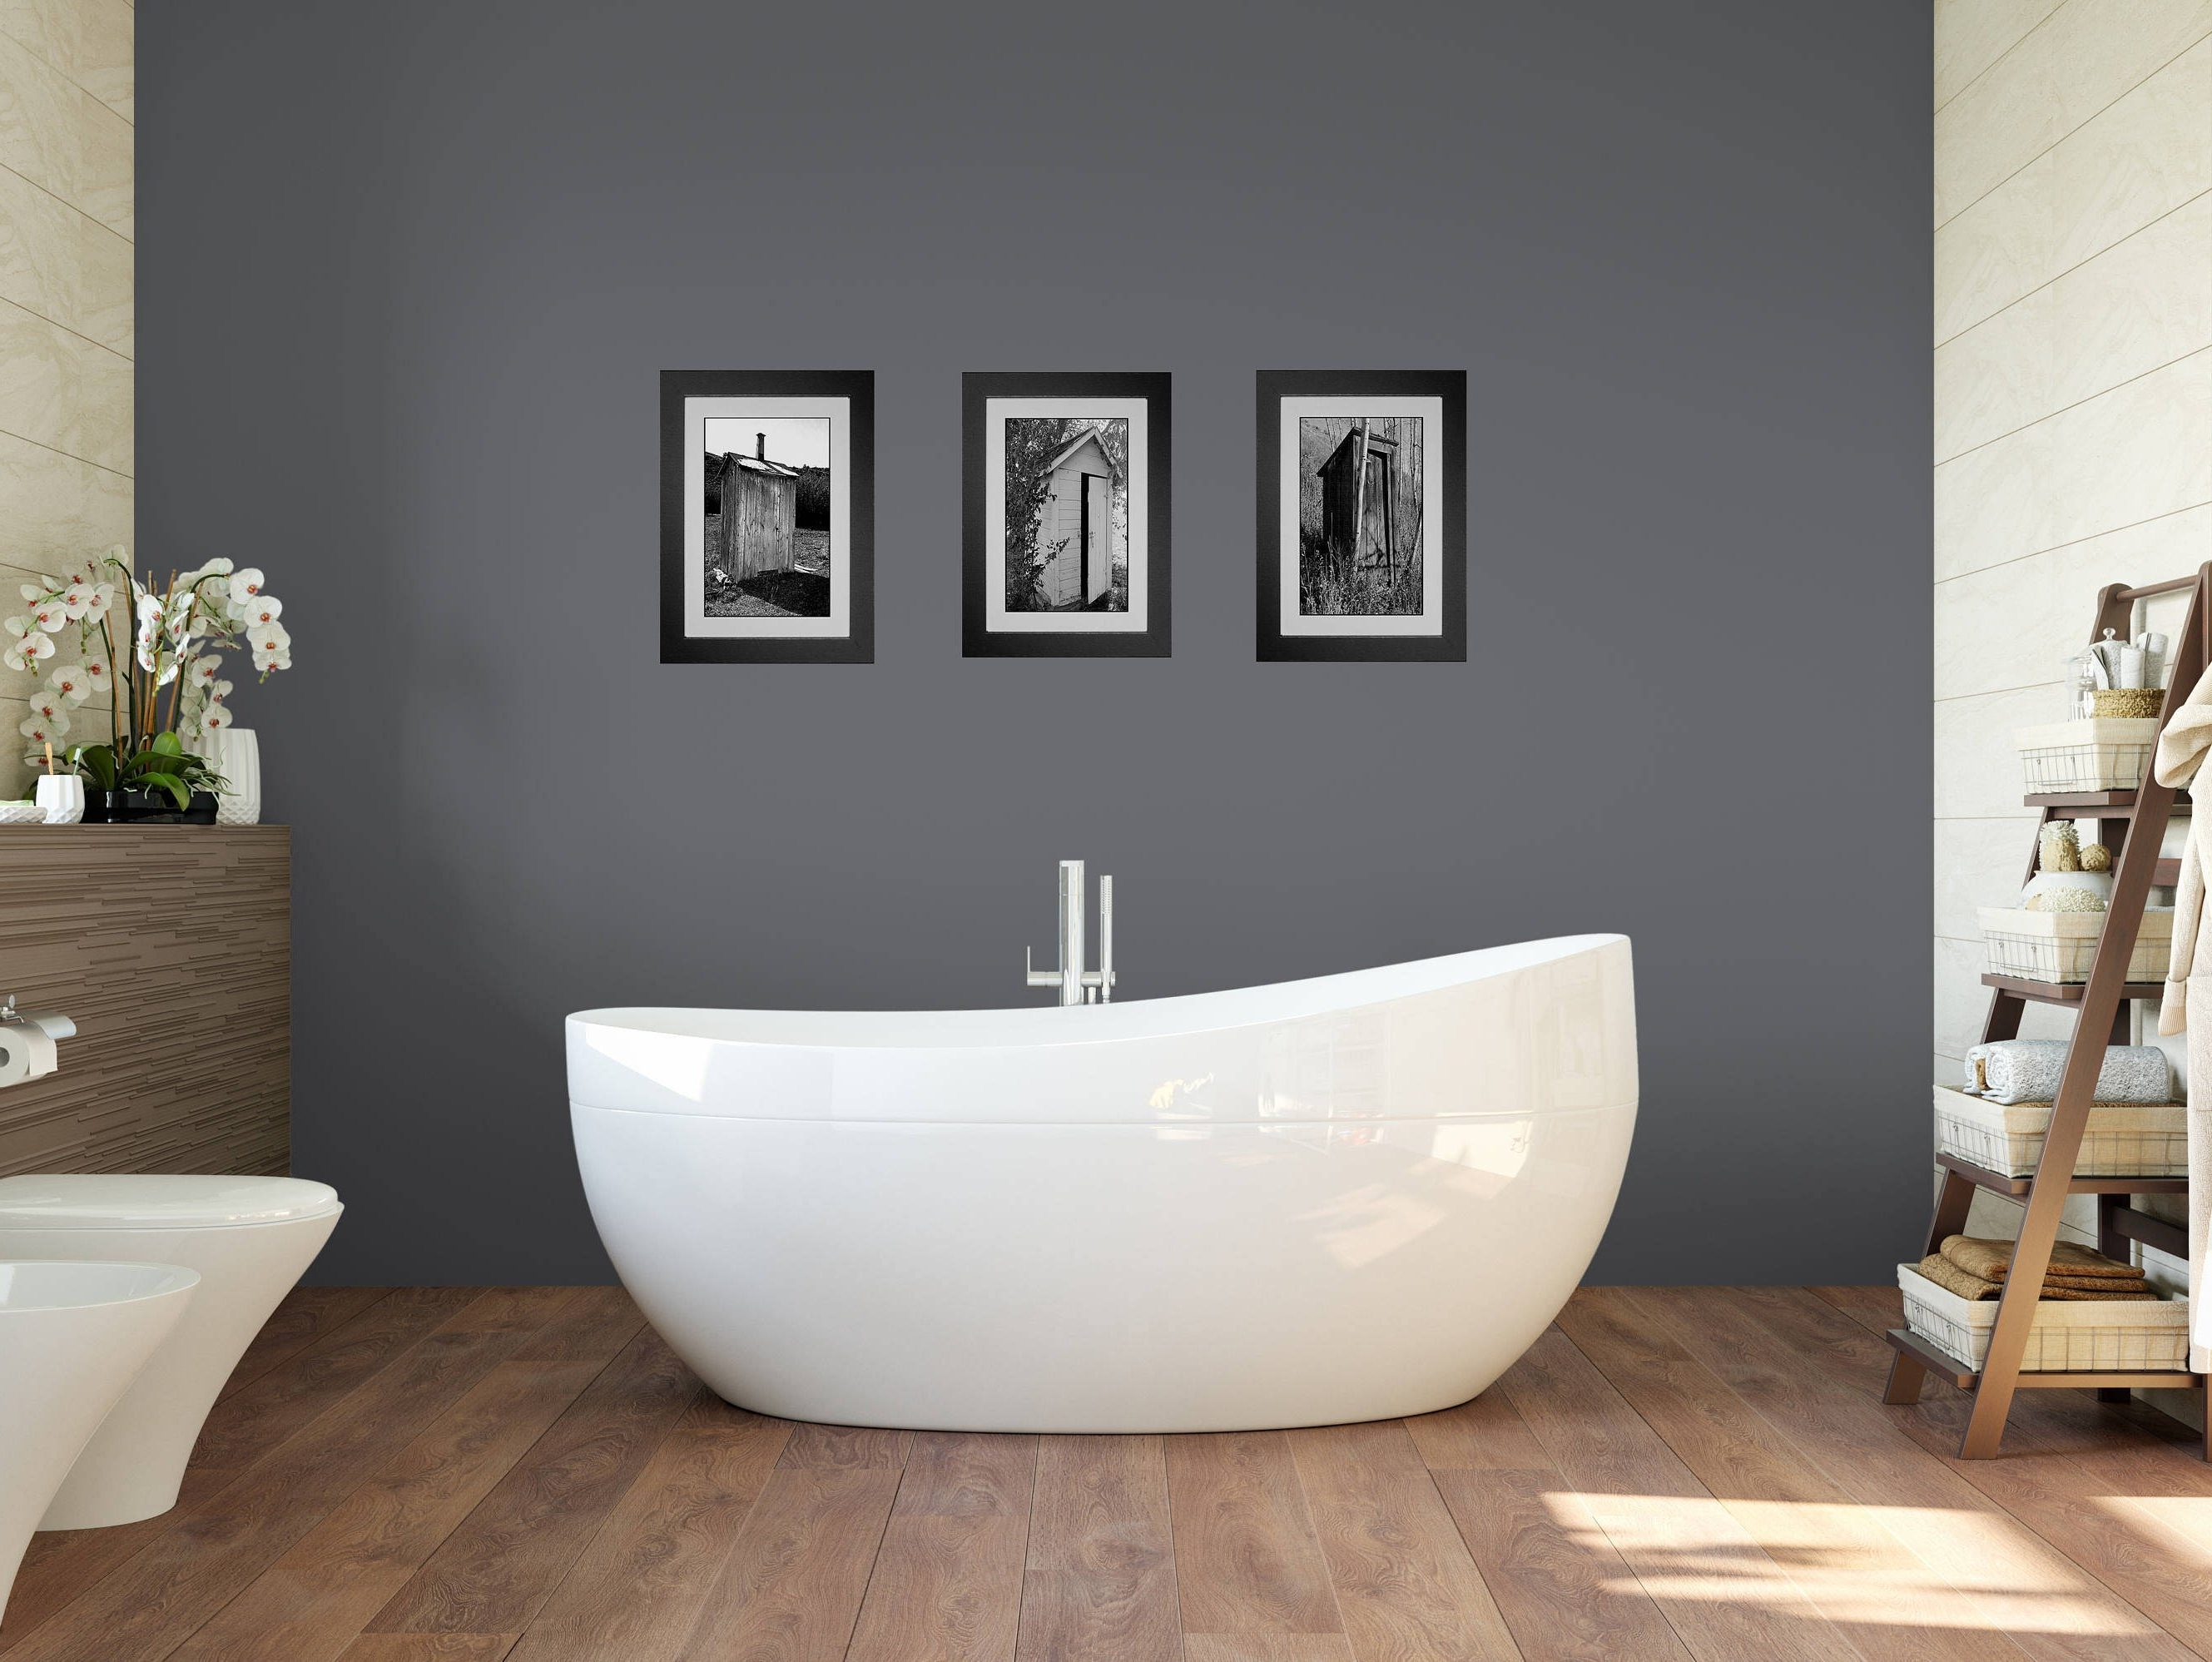 Widely Used Funny Bathroom Art, Bathroom Wall Art, 3 Print Set, Framed Prints Within Wall Art For Bathroom (View 15 of 15)